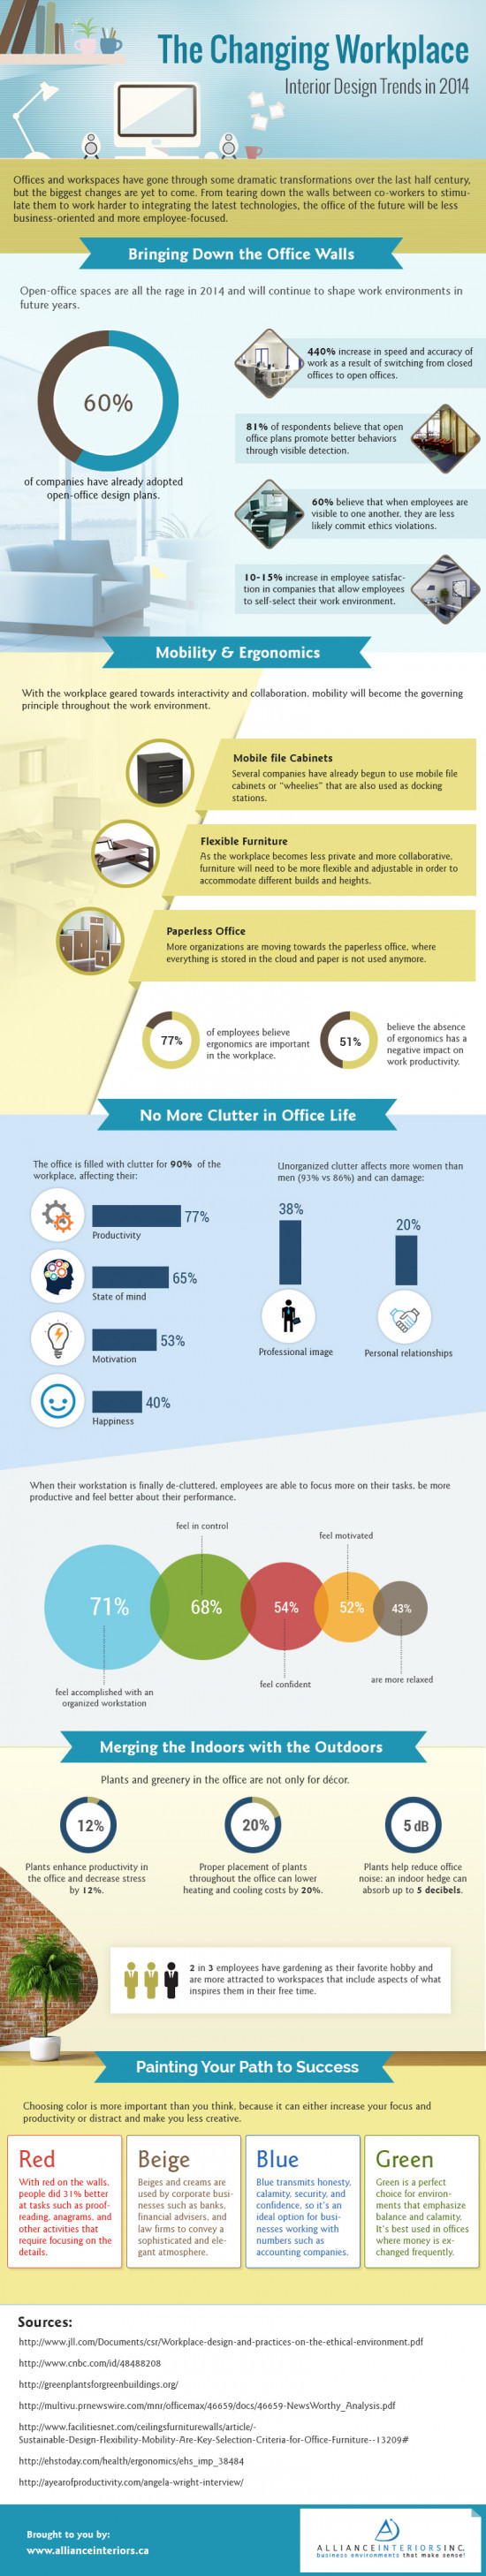 The Changing Workplace | 2014 Trends